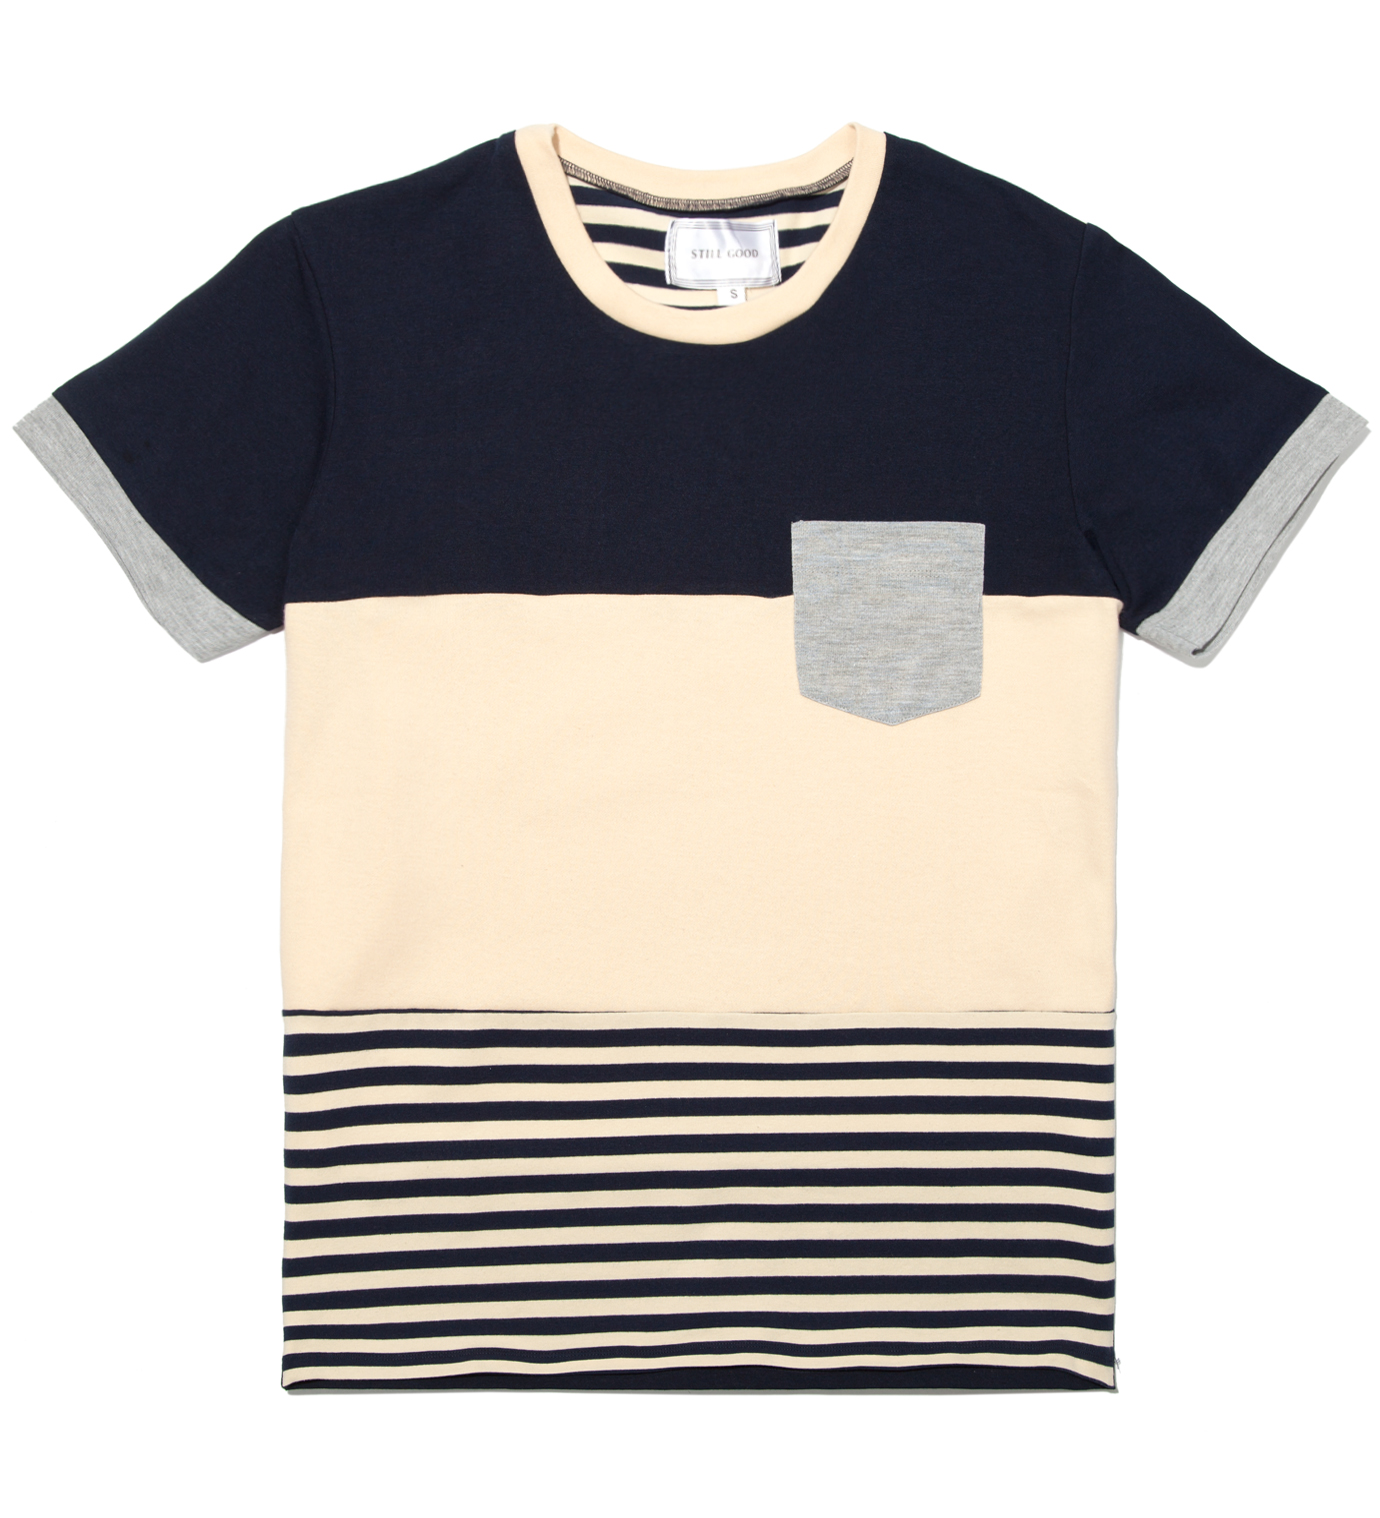 Still Good Navy and Beige Cohesion T- Shirt